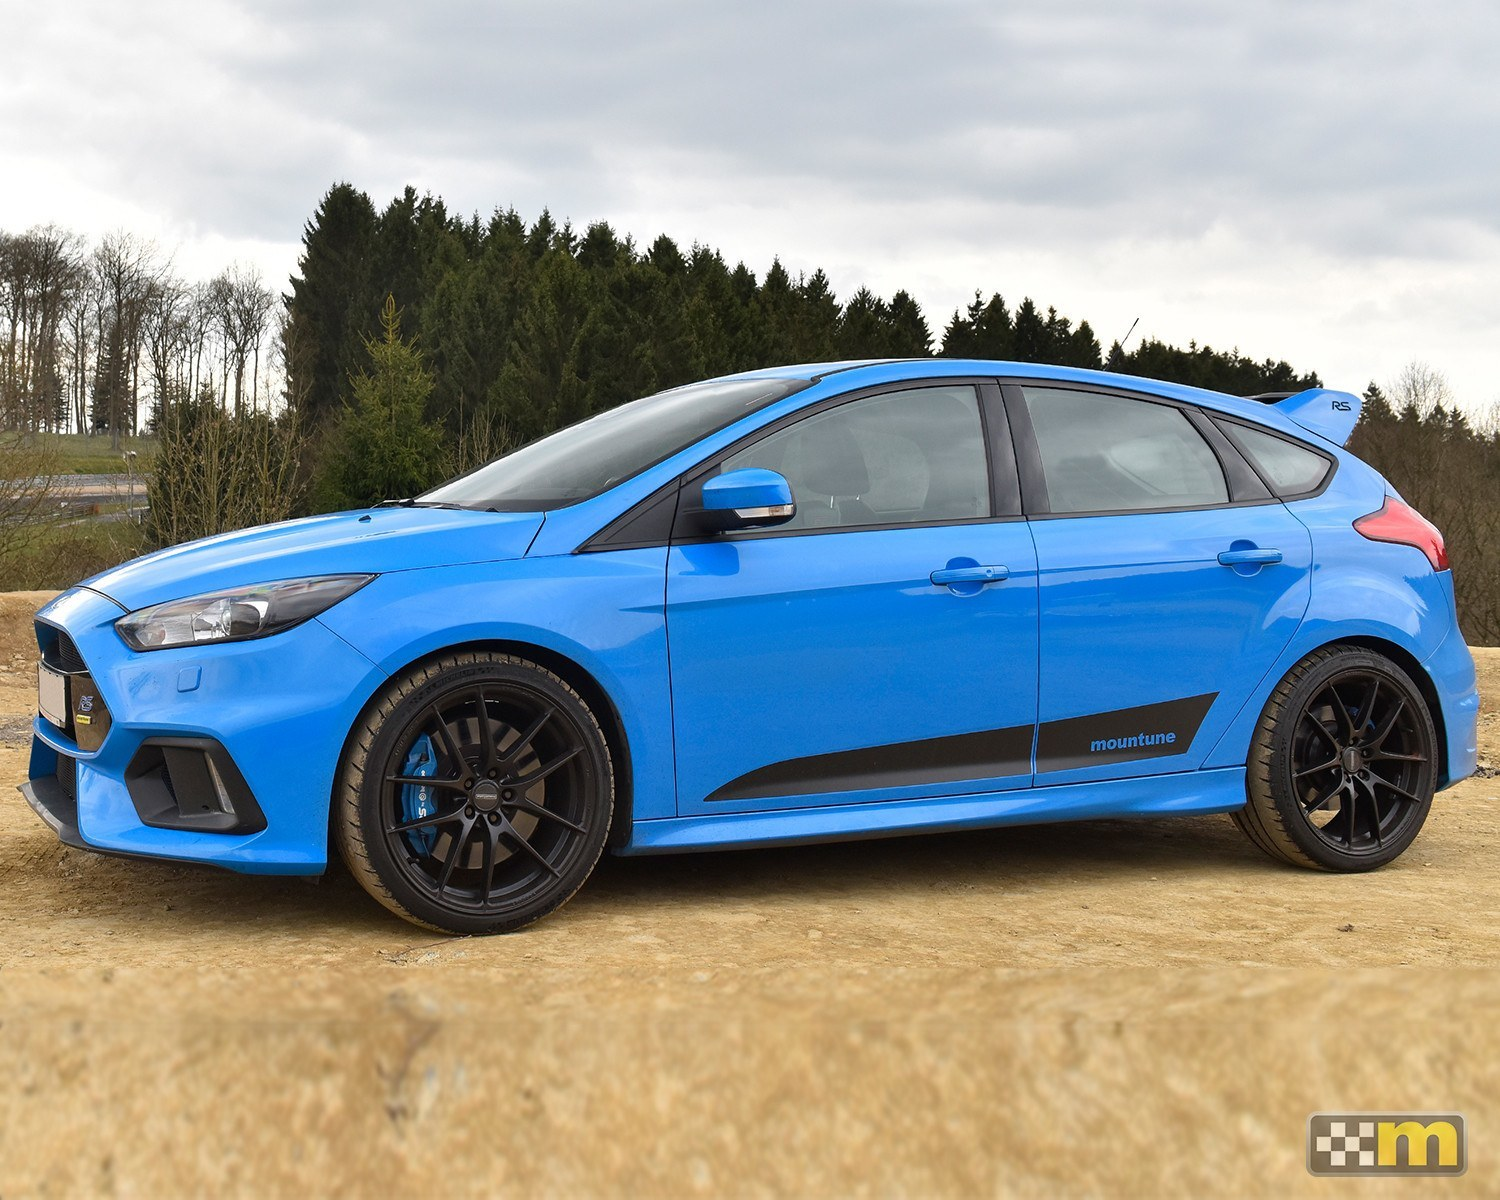 Mountune Phase 1 Upgrades Miountune Mk3 Focus Rs Upgrades